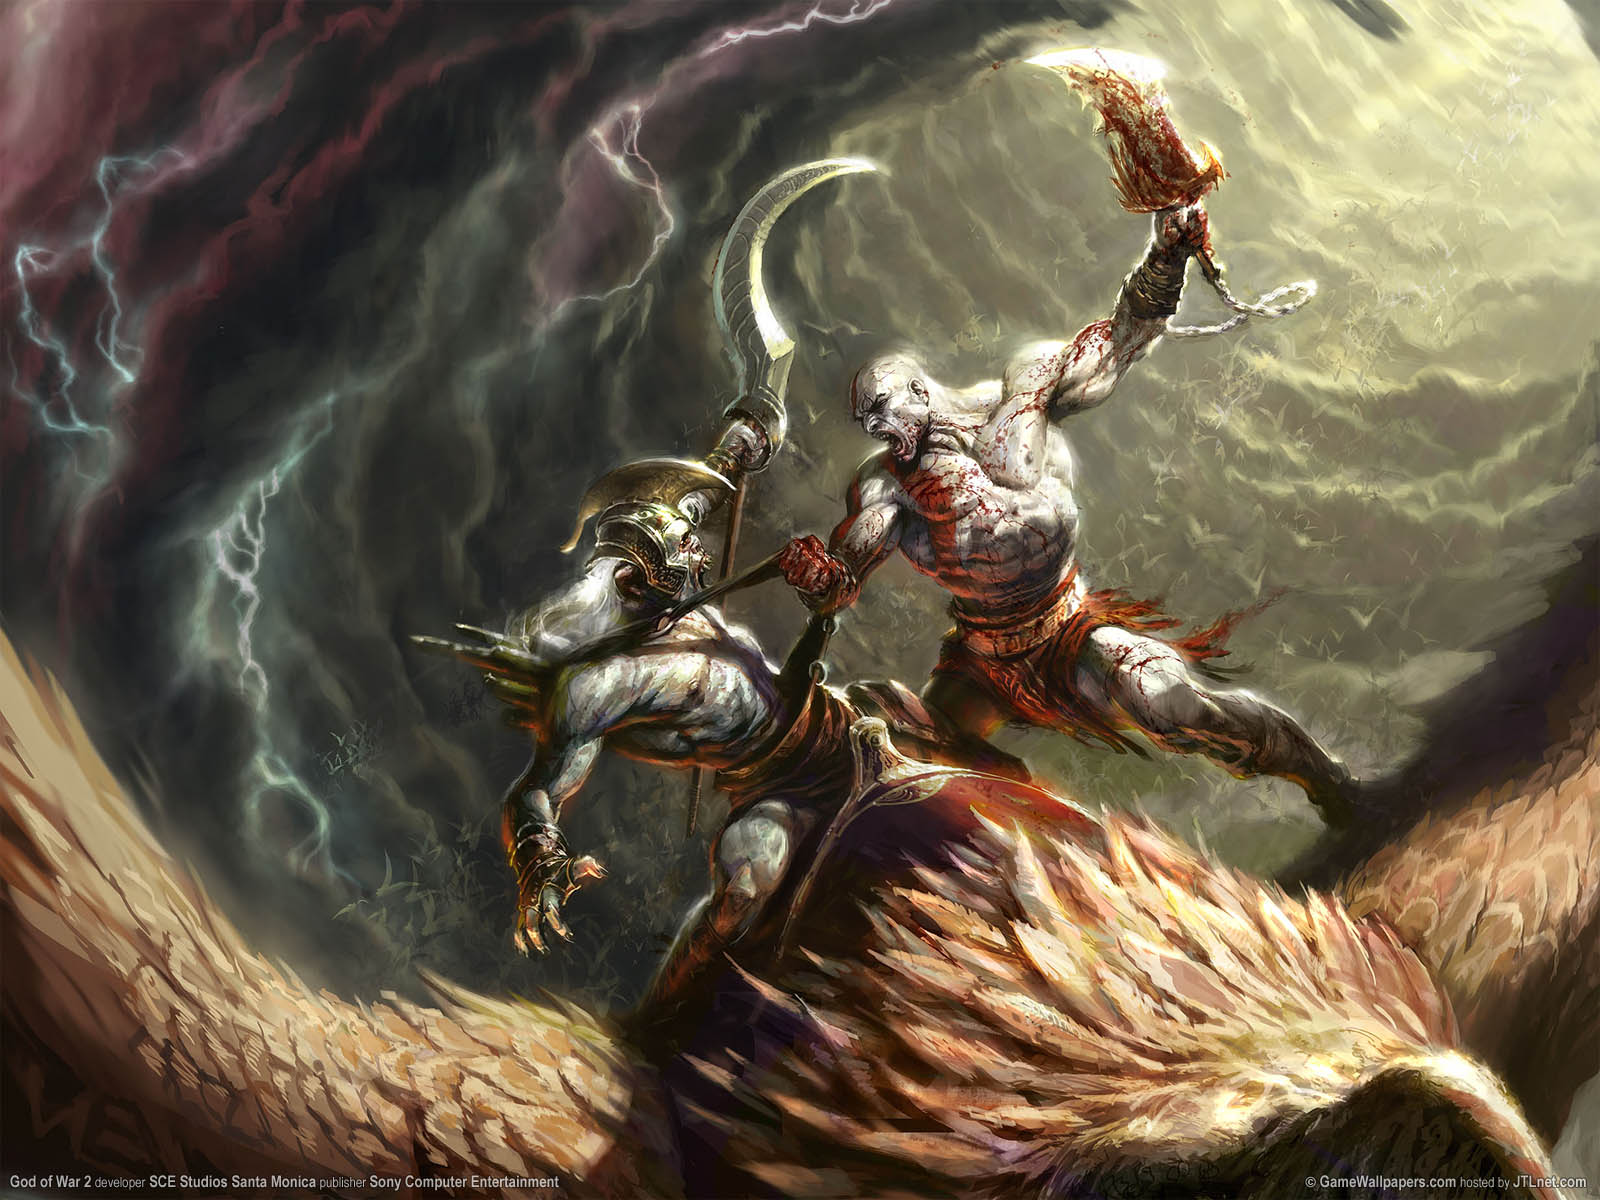 Download desktop wallpaper The game God of War 2, kloassnye